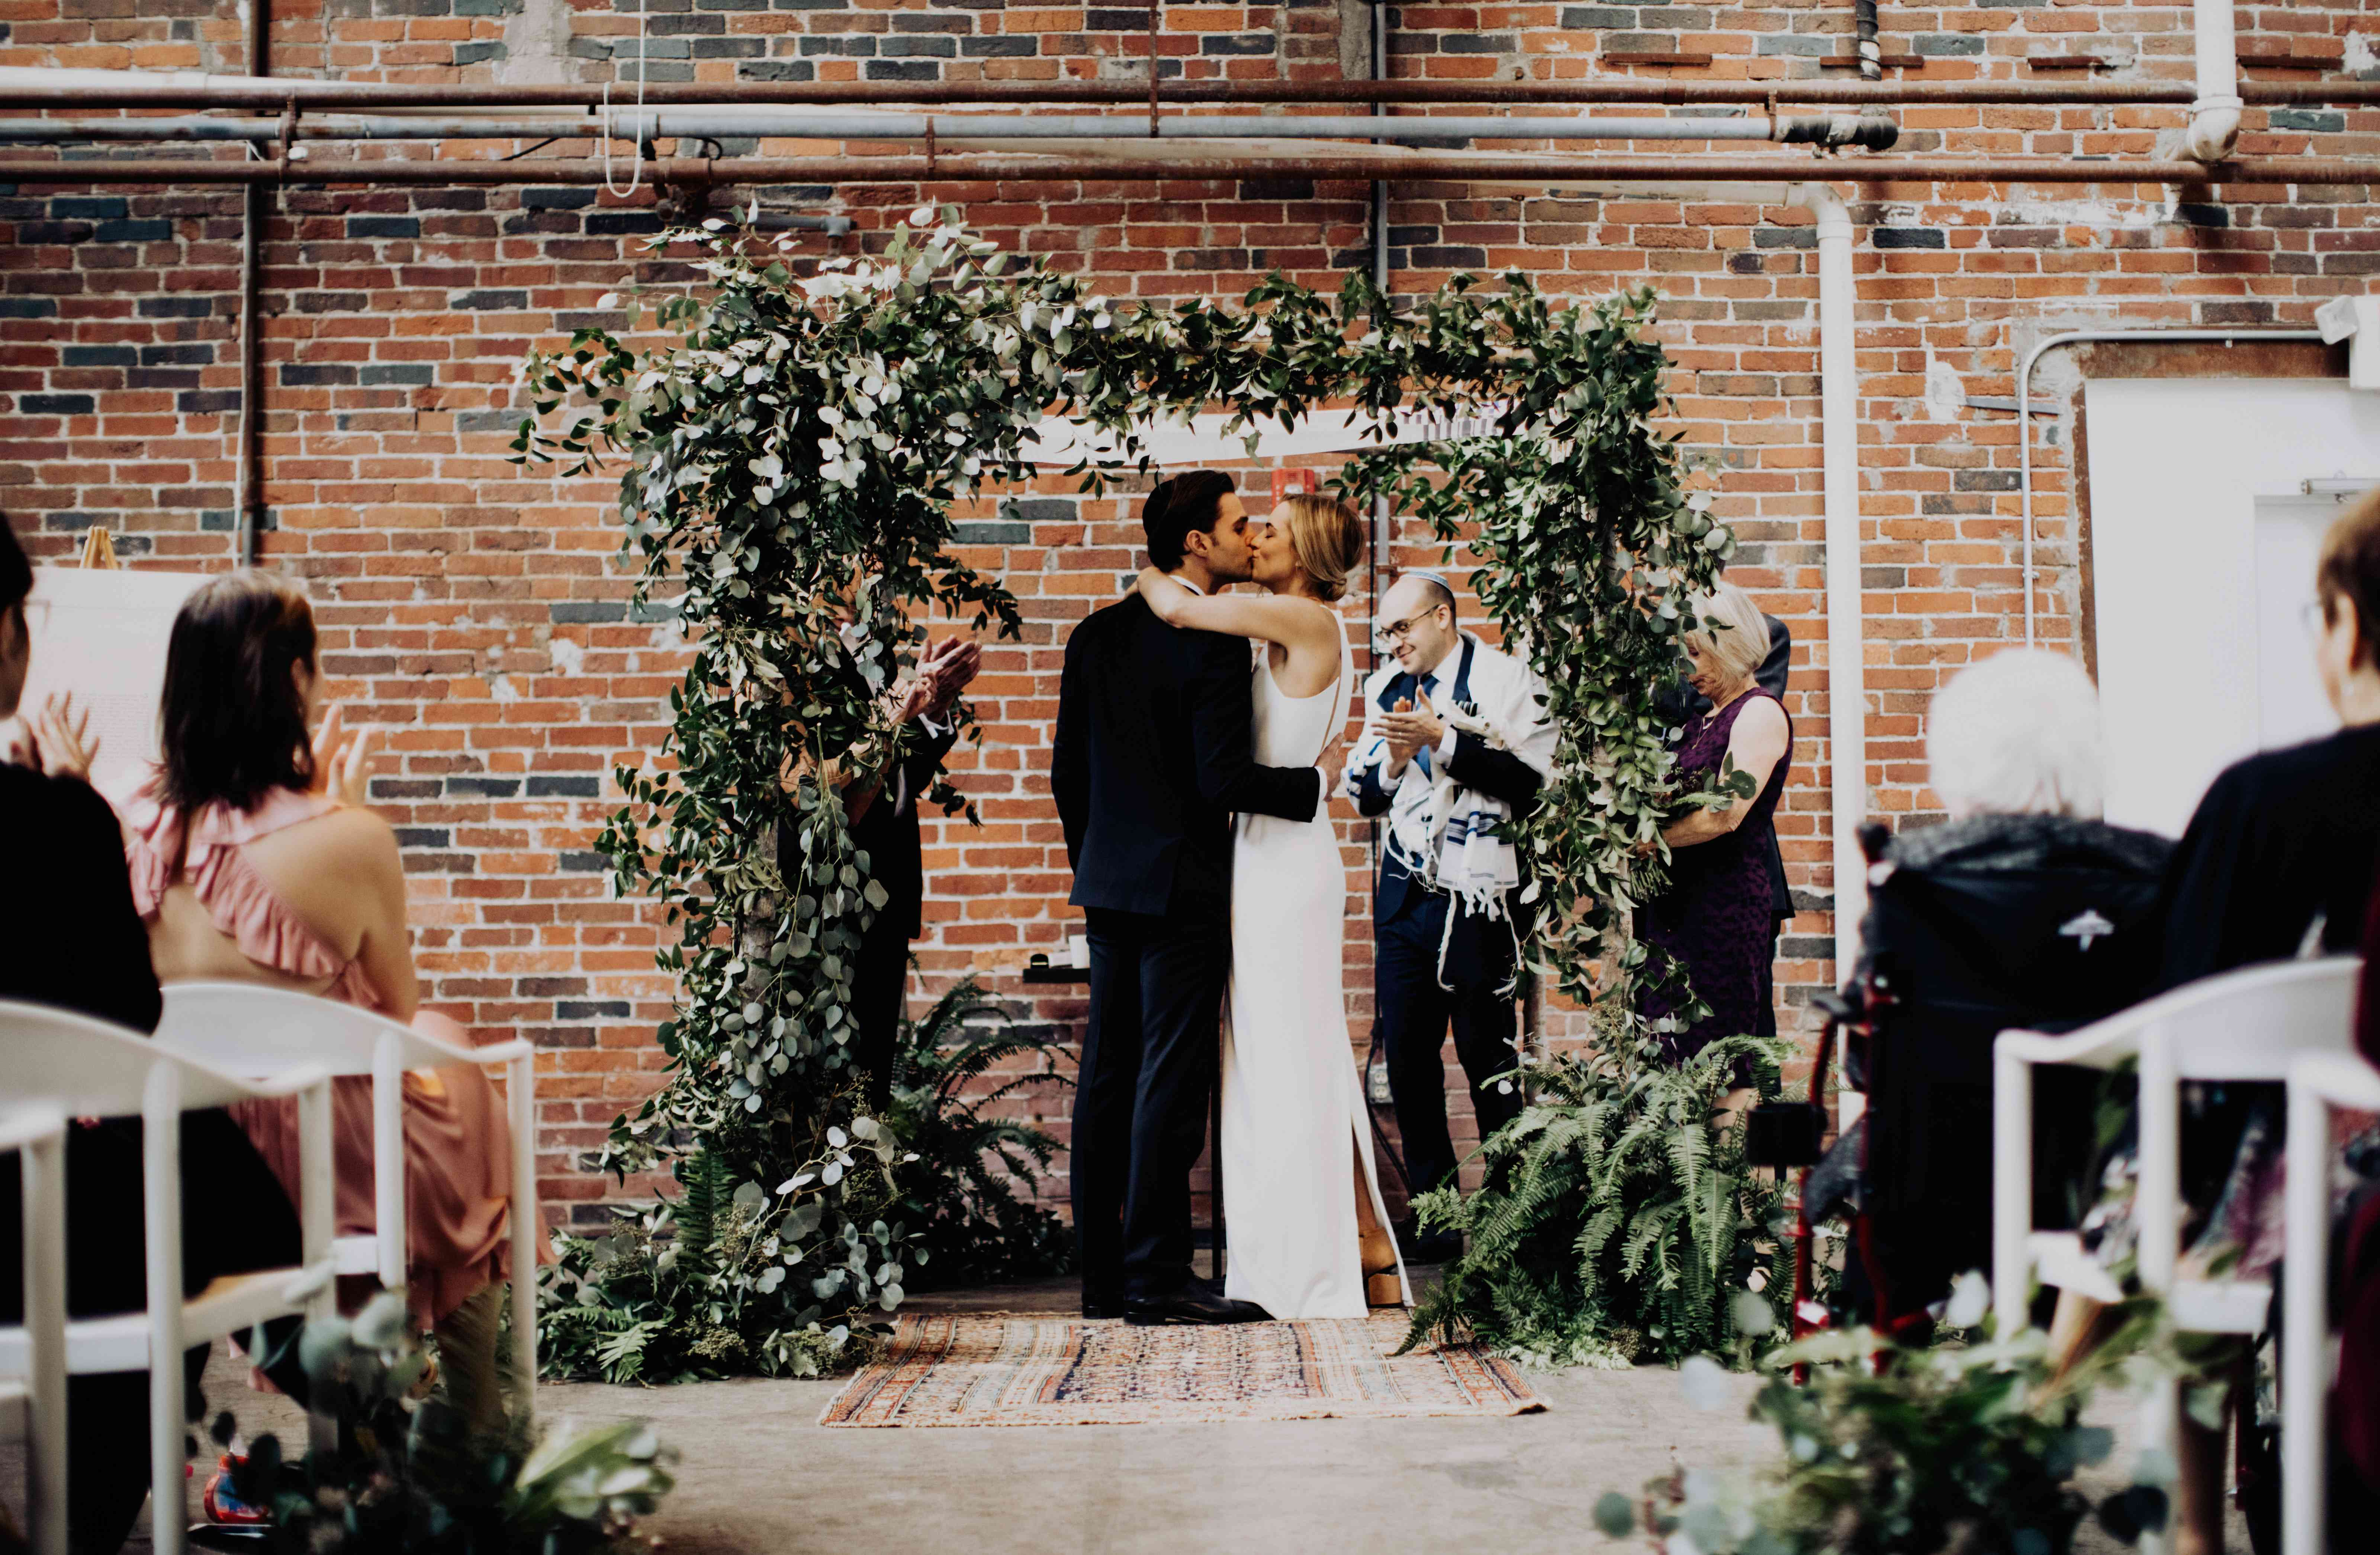 Bride and groom sharing kiss under floral altar